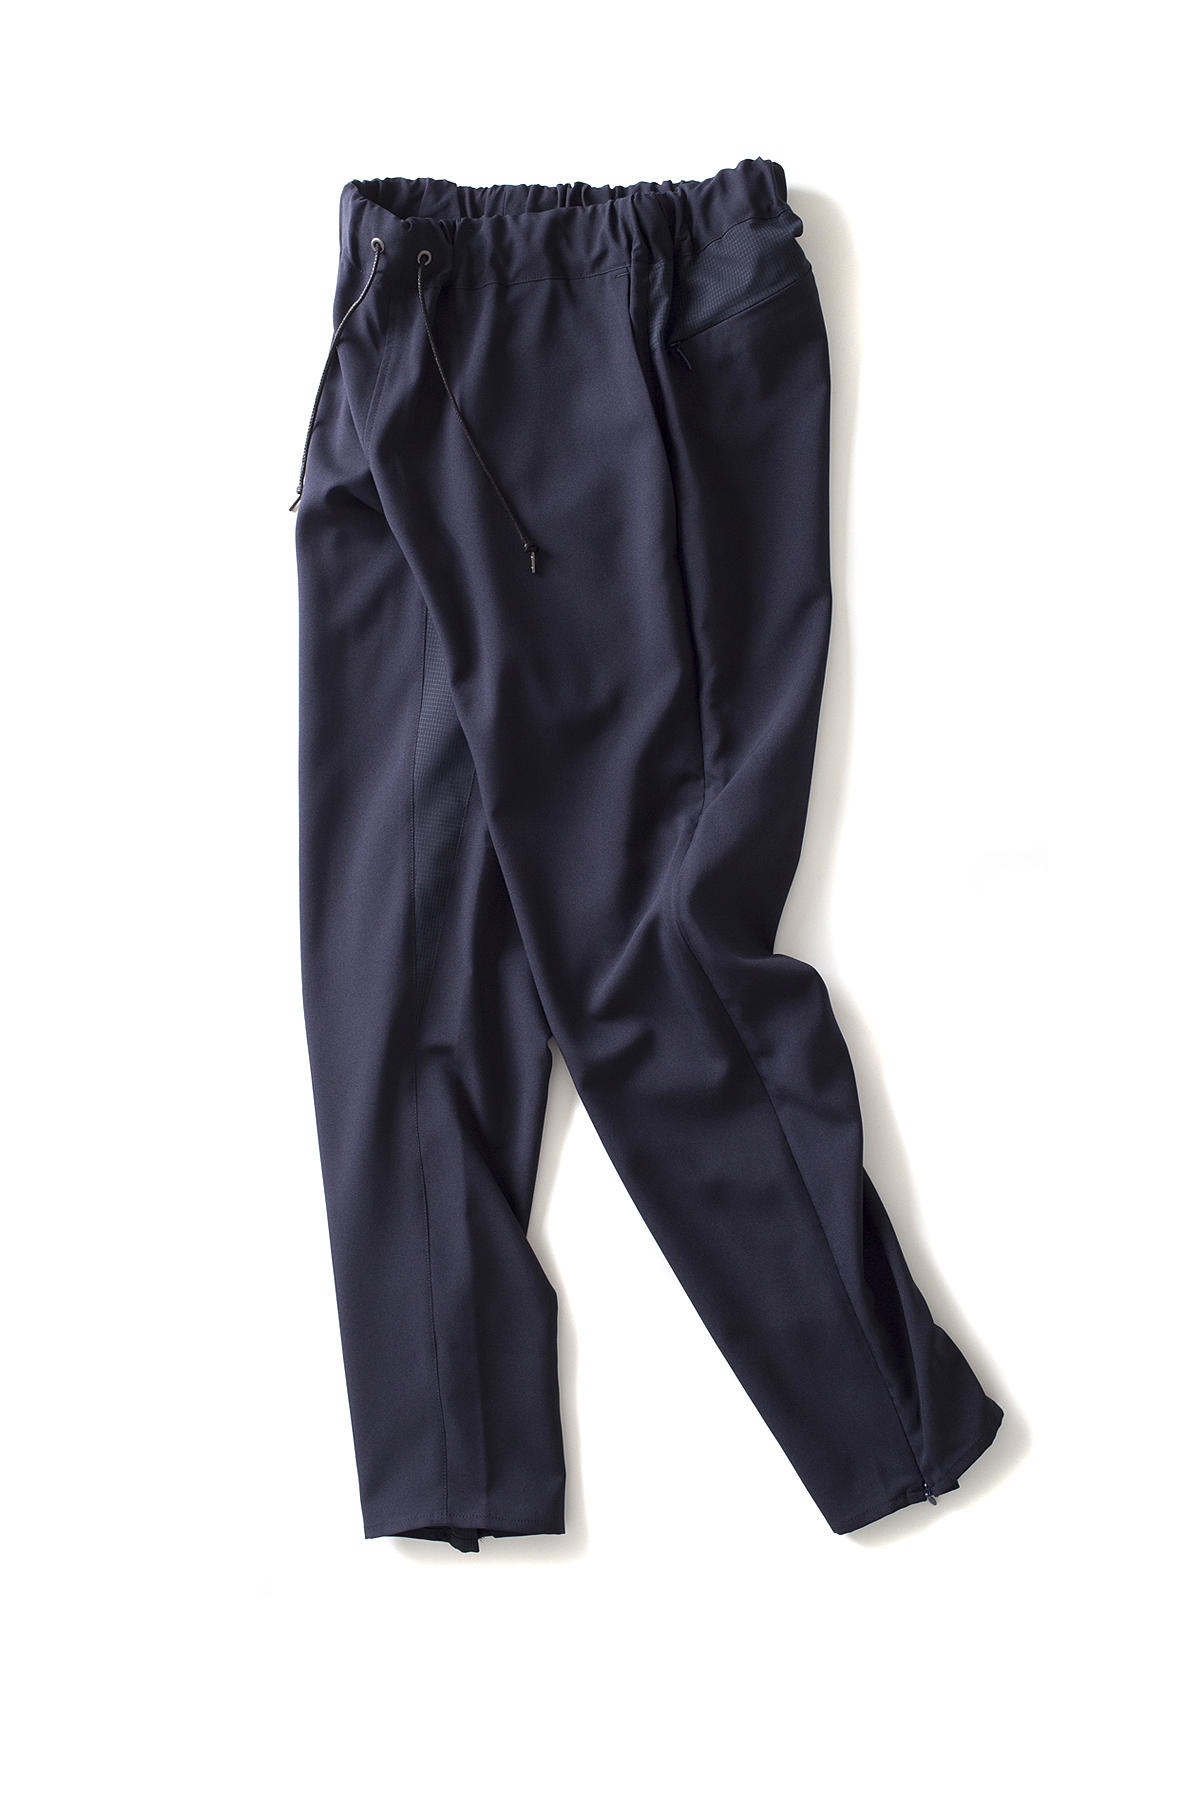 EEL : Bench Pants (Navy)